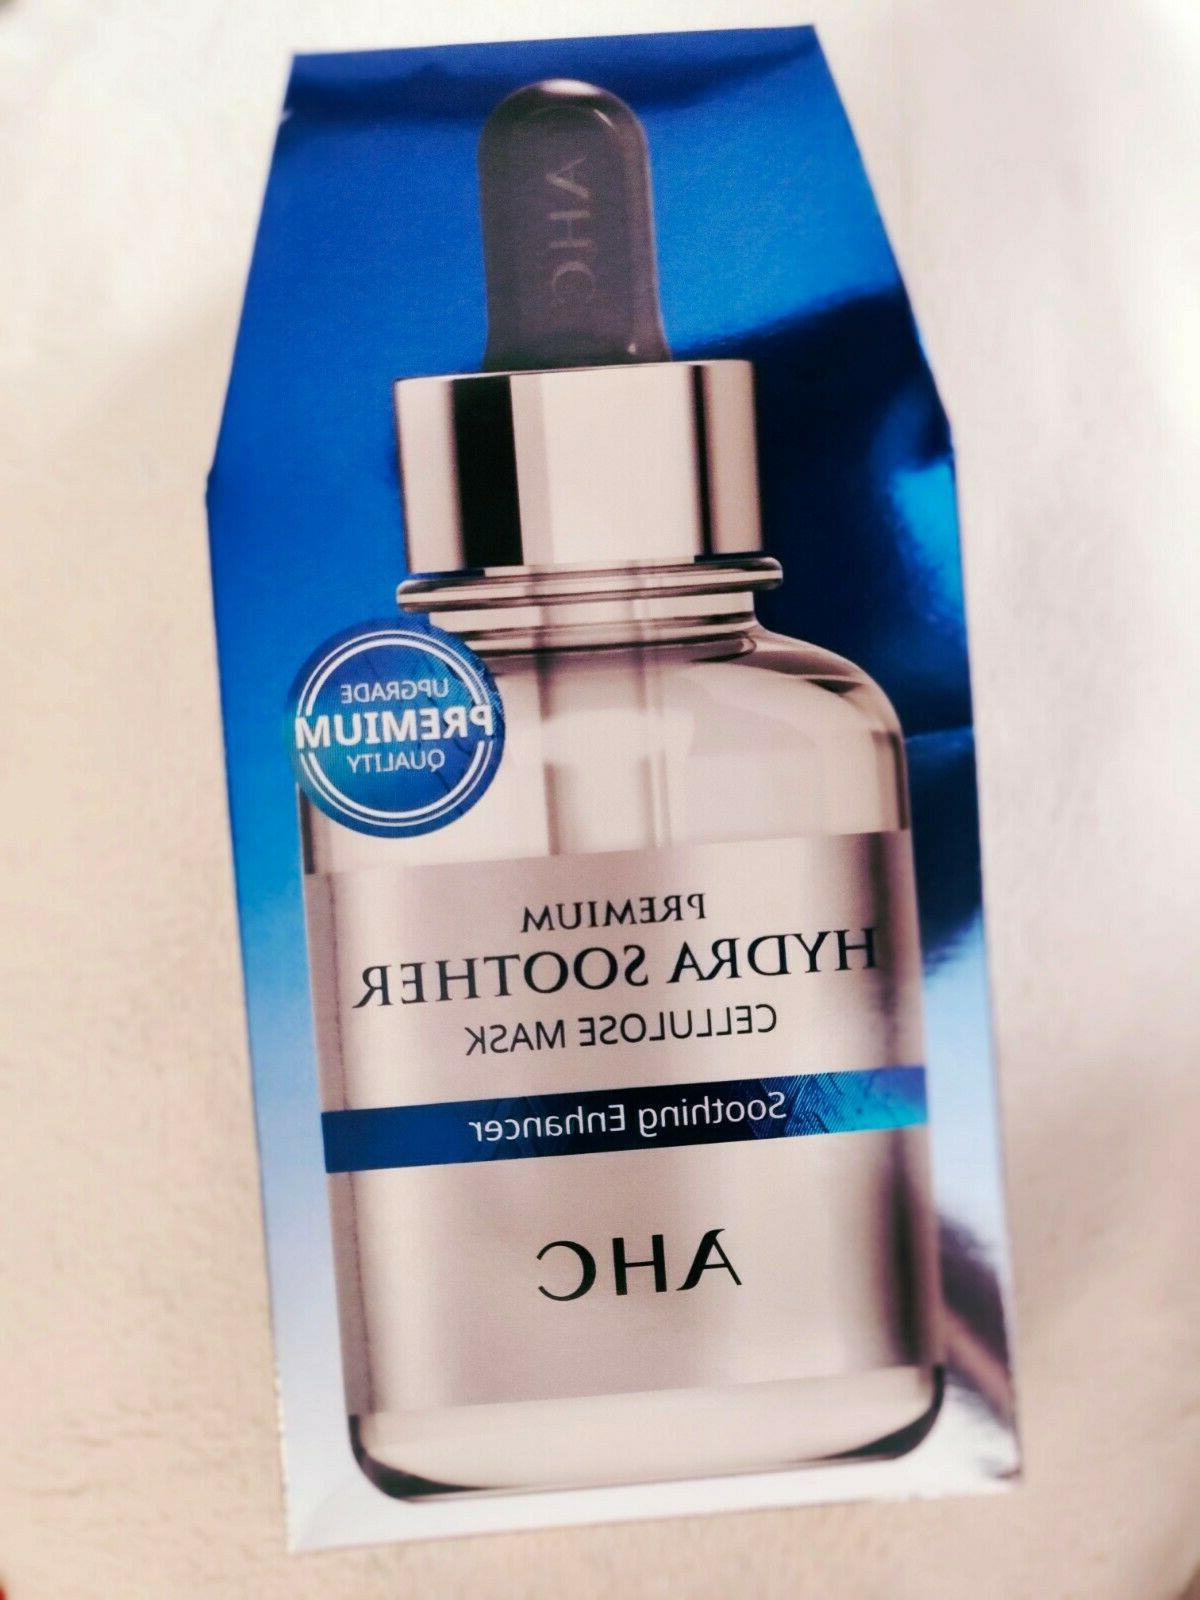 ahc premium hydra soother cellulose hyaluronic acid